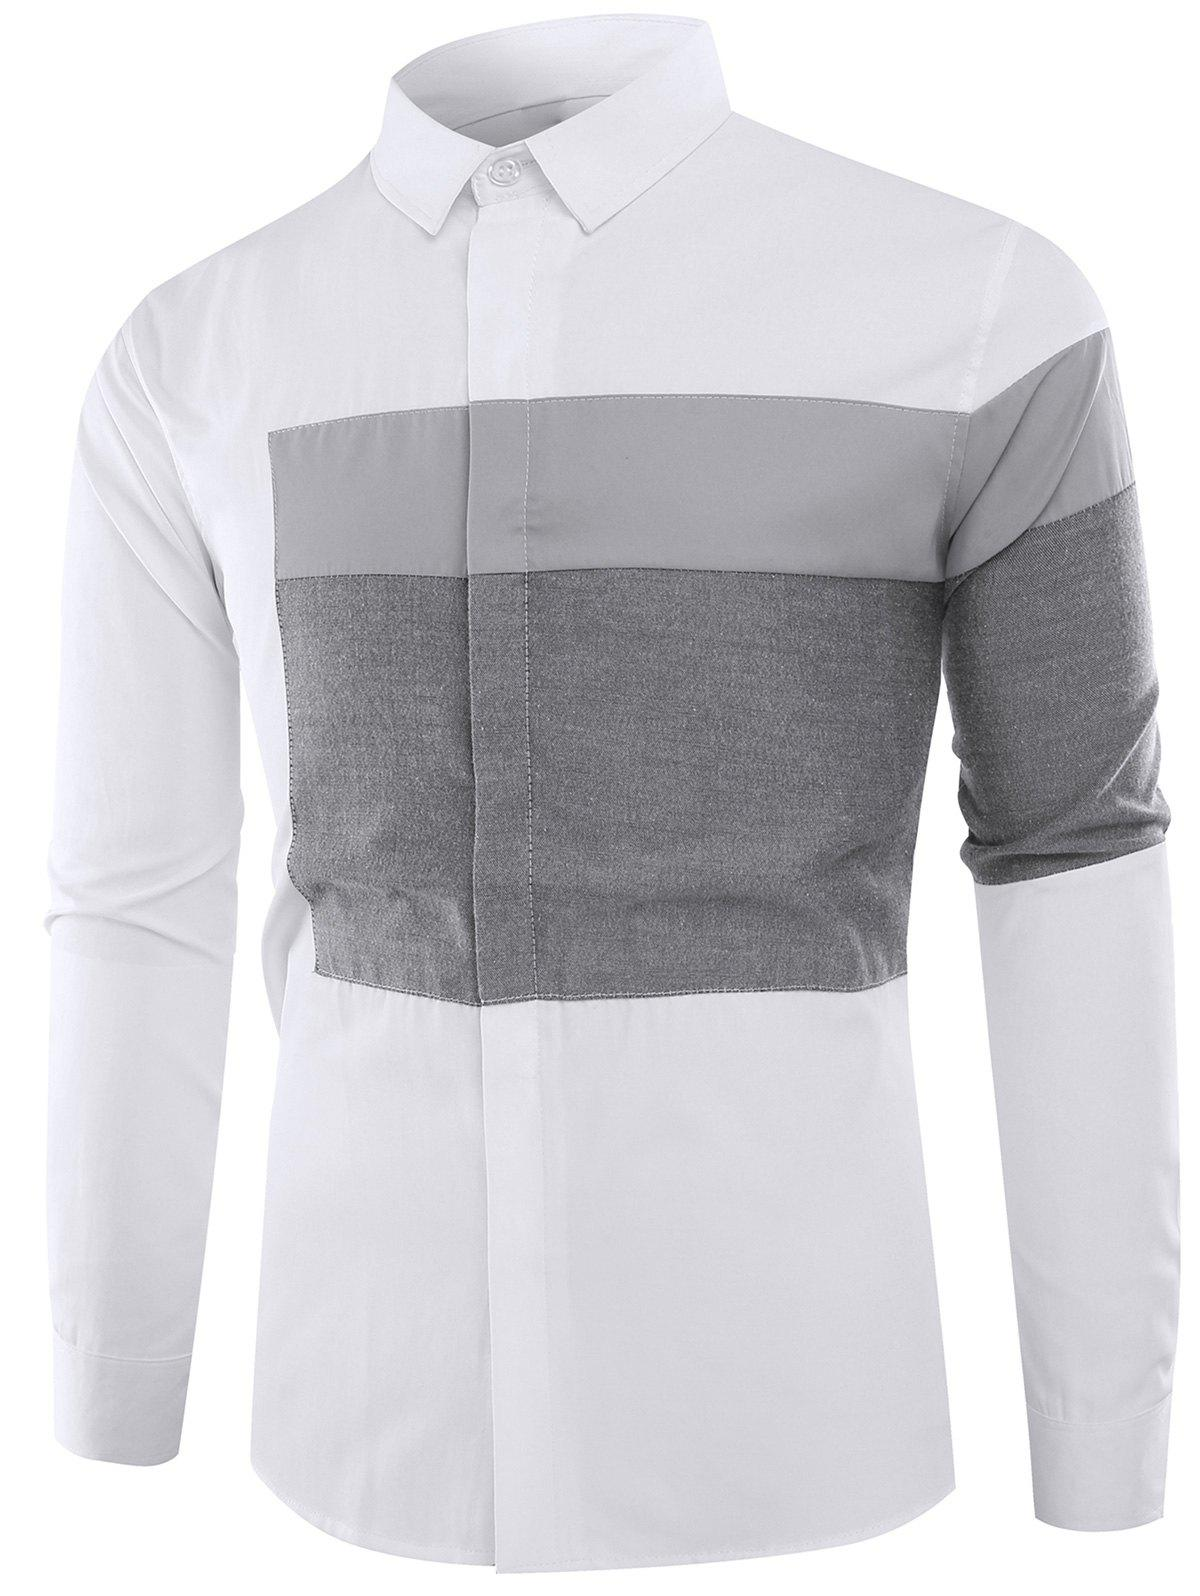 Long Sleeves Color Block Panel Shirt - GRAY 4XL